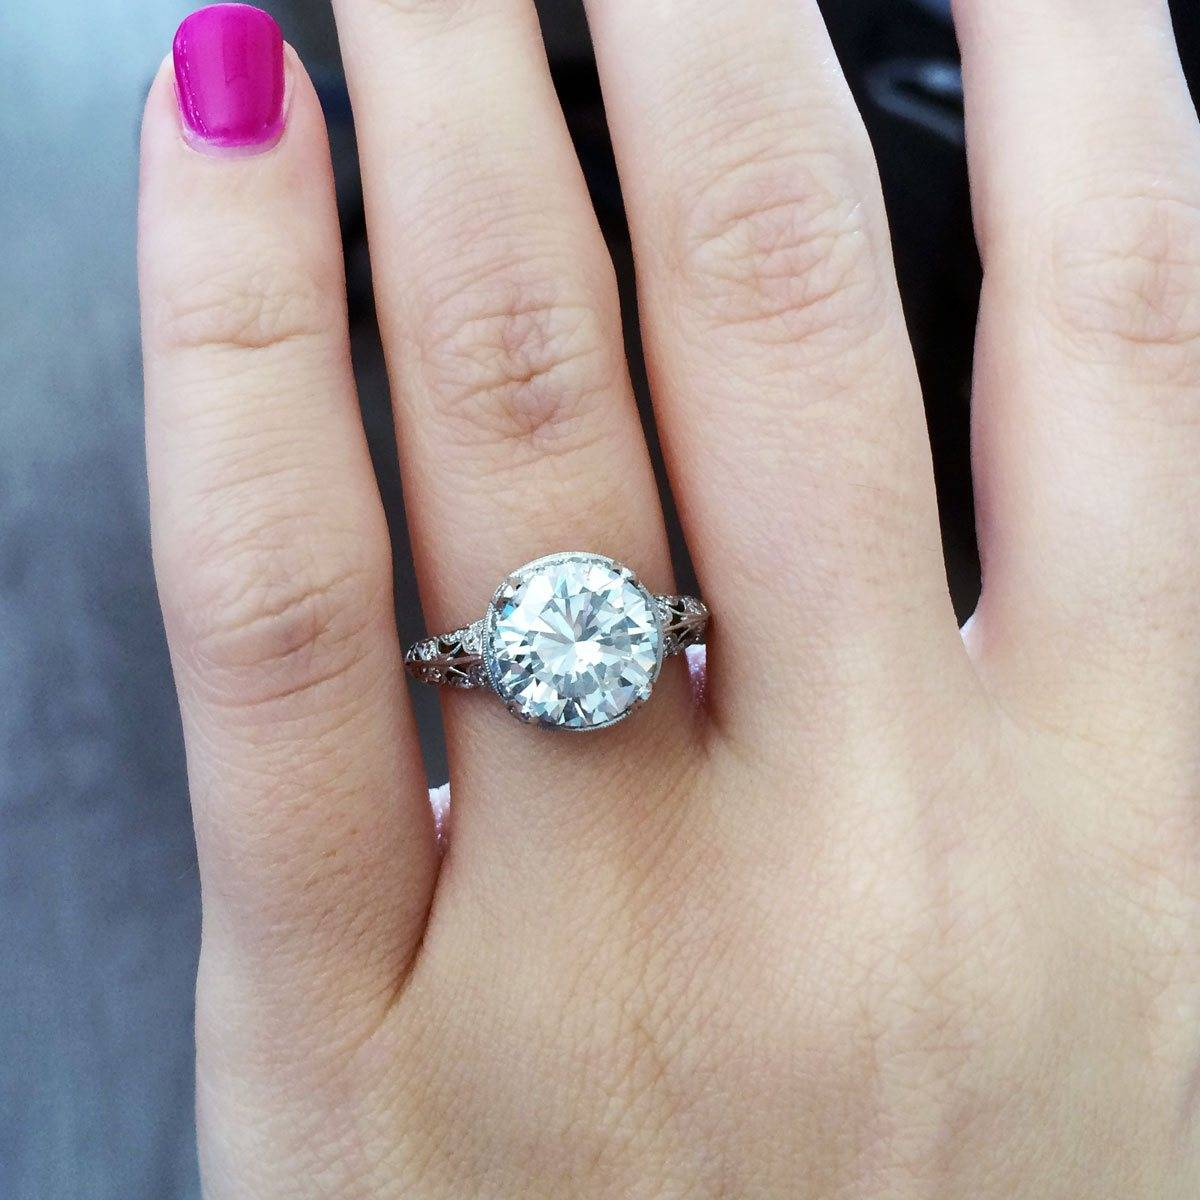 ring million for engagement cartier dollar rings lovely wedding intended